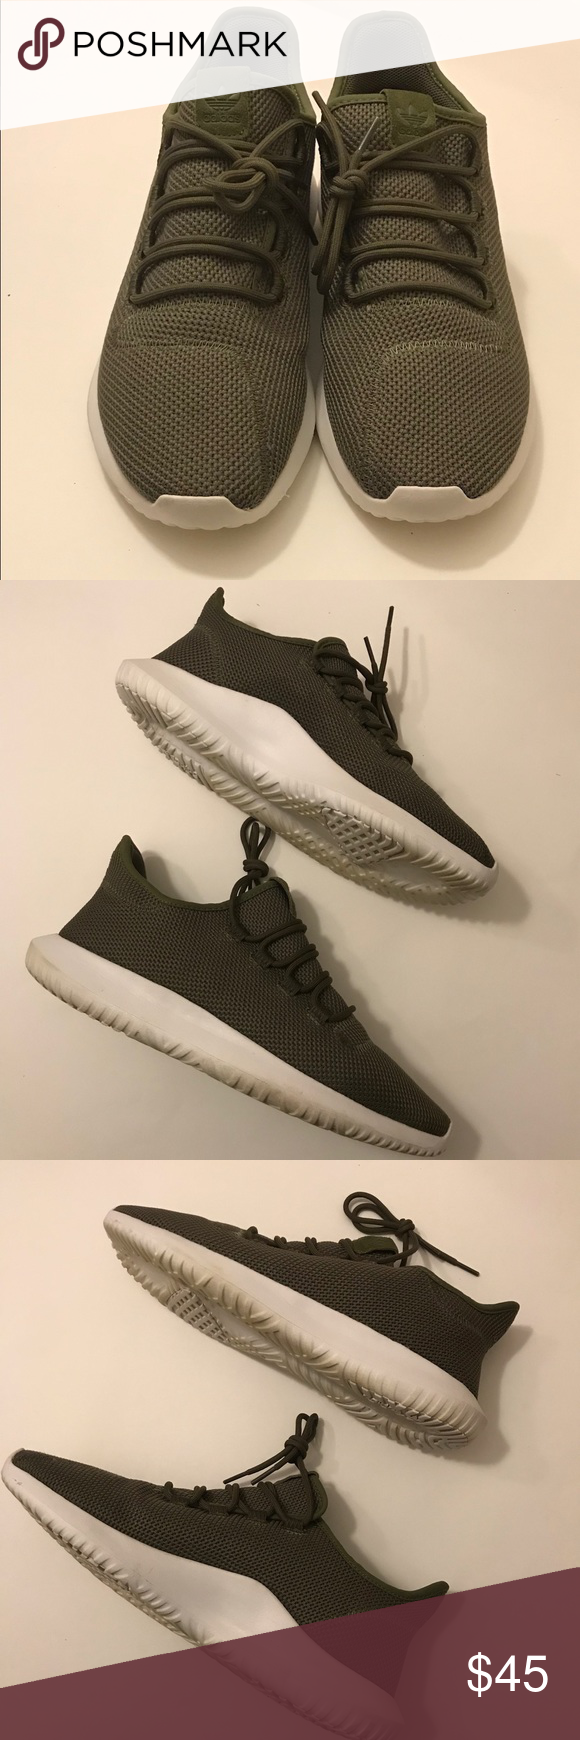 new products 48292 f3c06 Men's size 12 Adidas Tubular Shadow Men's Olive Green and ...